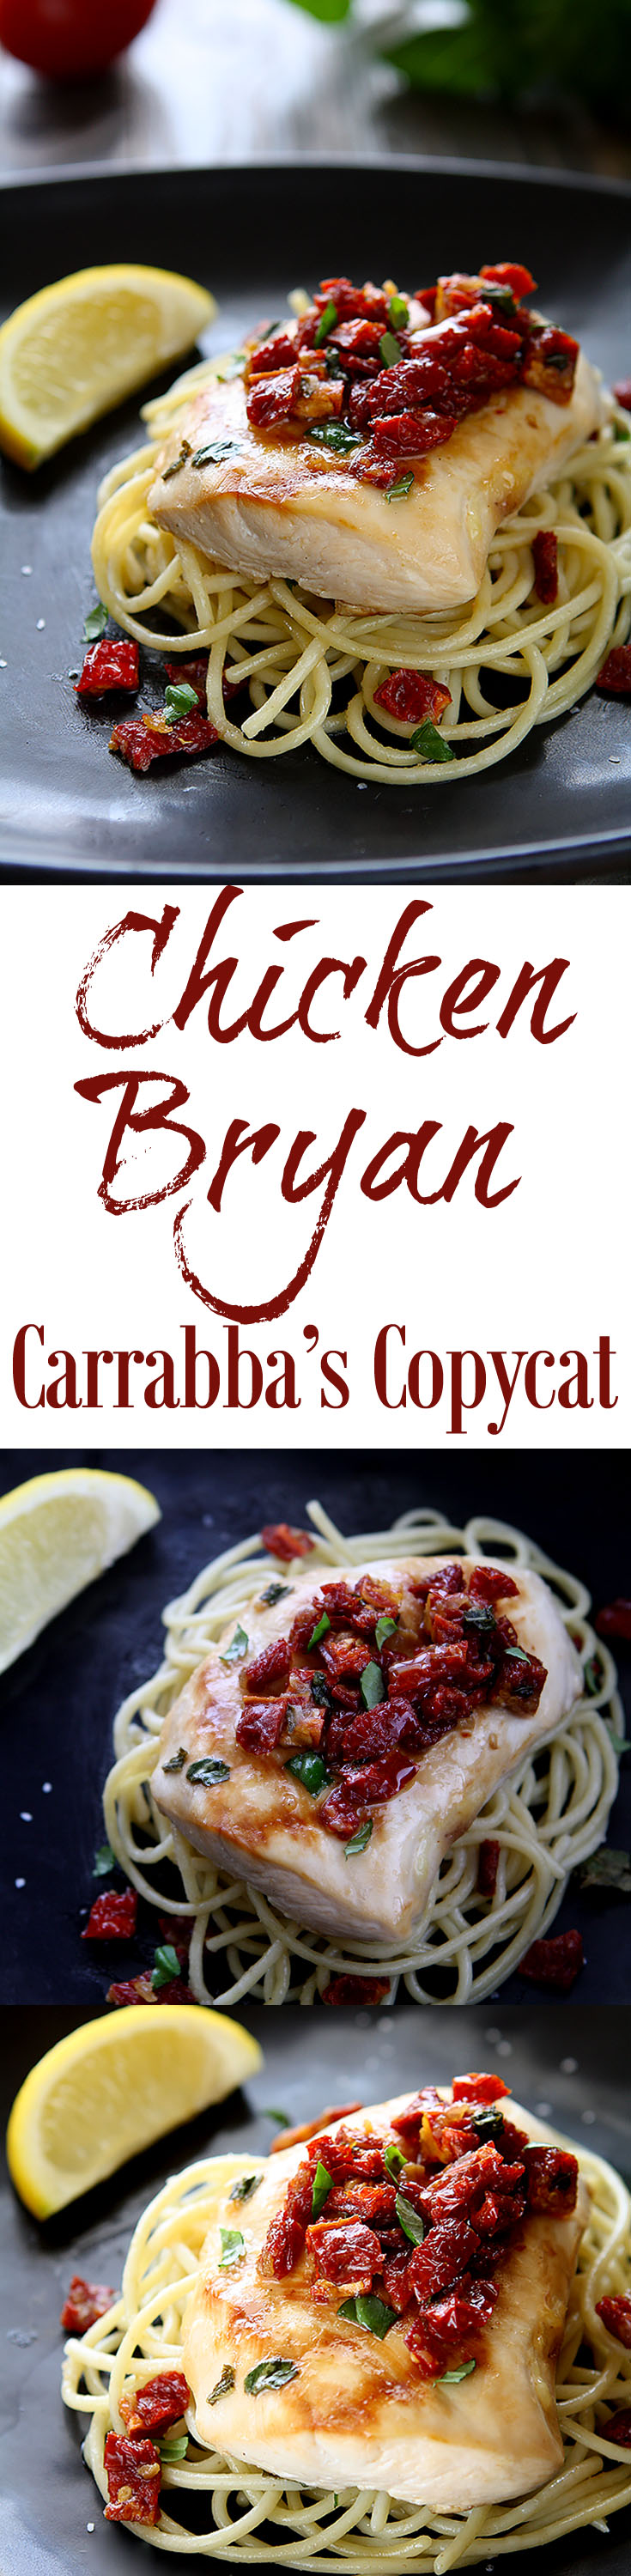 Chicken Bryan (Carrabba's Copycat Recipe) | Simple to prepare but with a huge flavor payoff. Grilled chicken breast on a bed of al dente pasta topped with a sauce of sun-dried tomatoes, fresh basil, butter, garlic, onions, lemon and white wine. Amazing! | www.heavenlyhomecooking.com